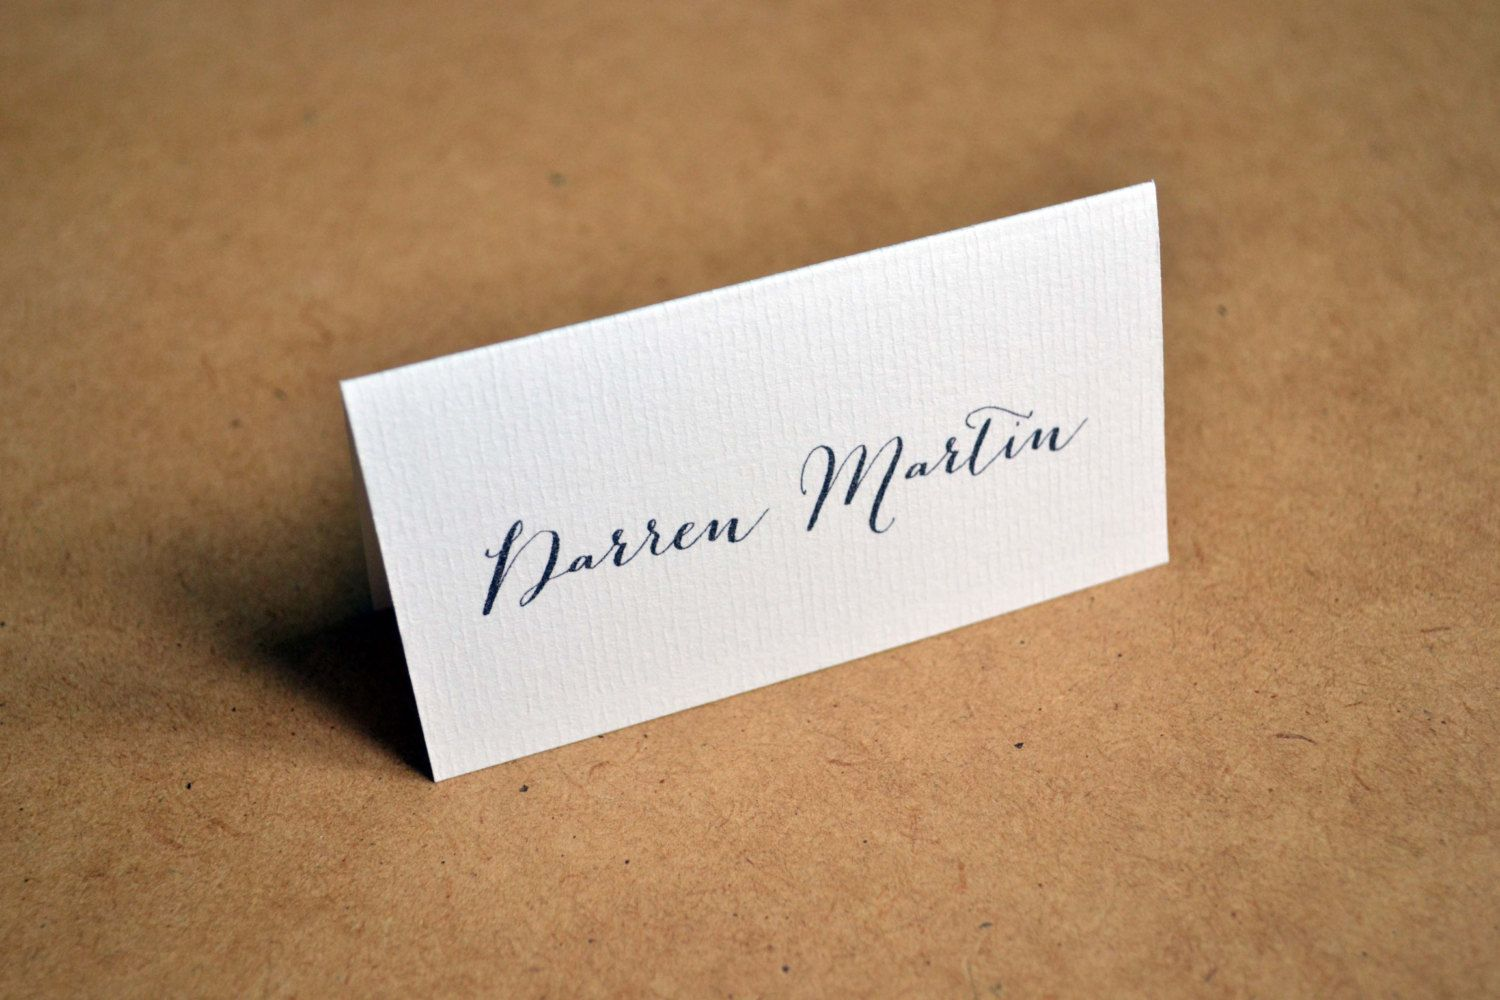 50 Ivory C5 Envelopes 100gsm for A5 Cards Greetings Weddings Invitations